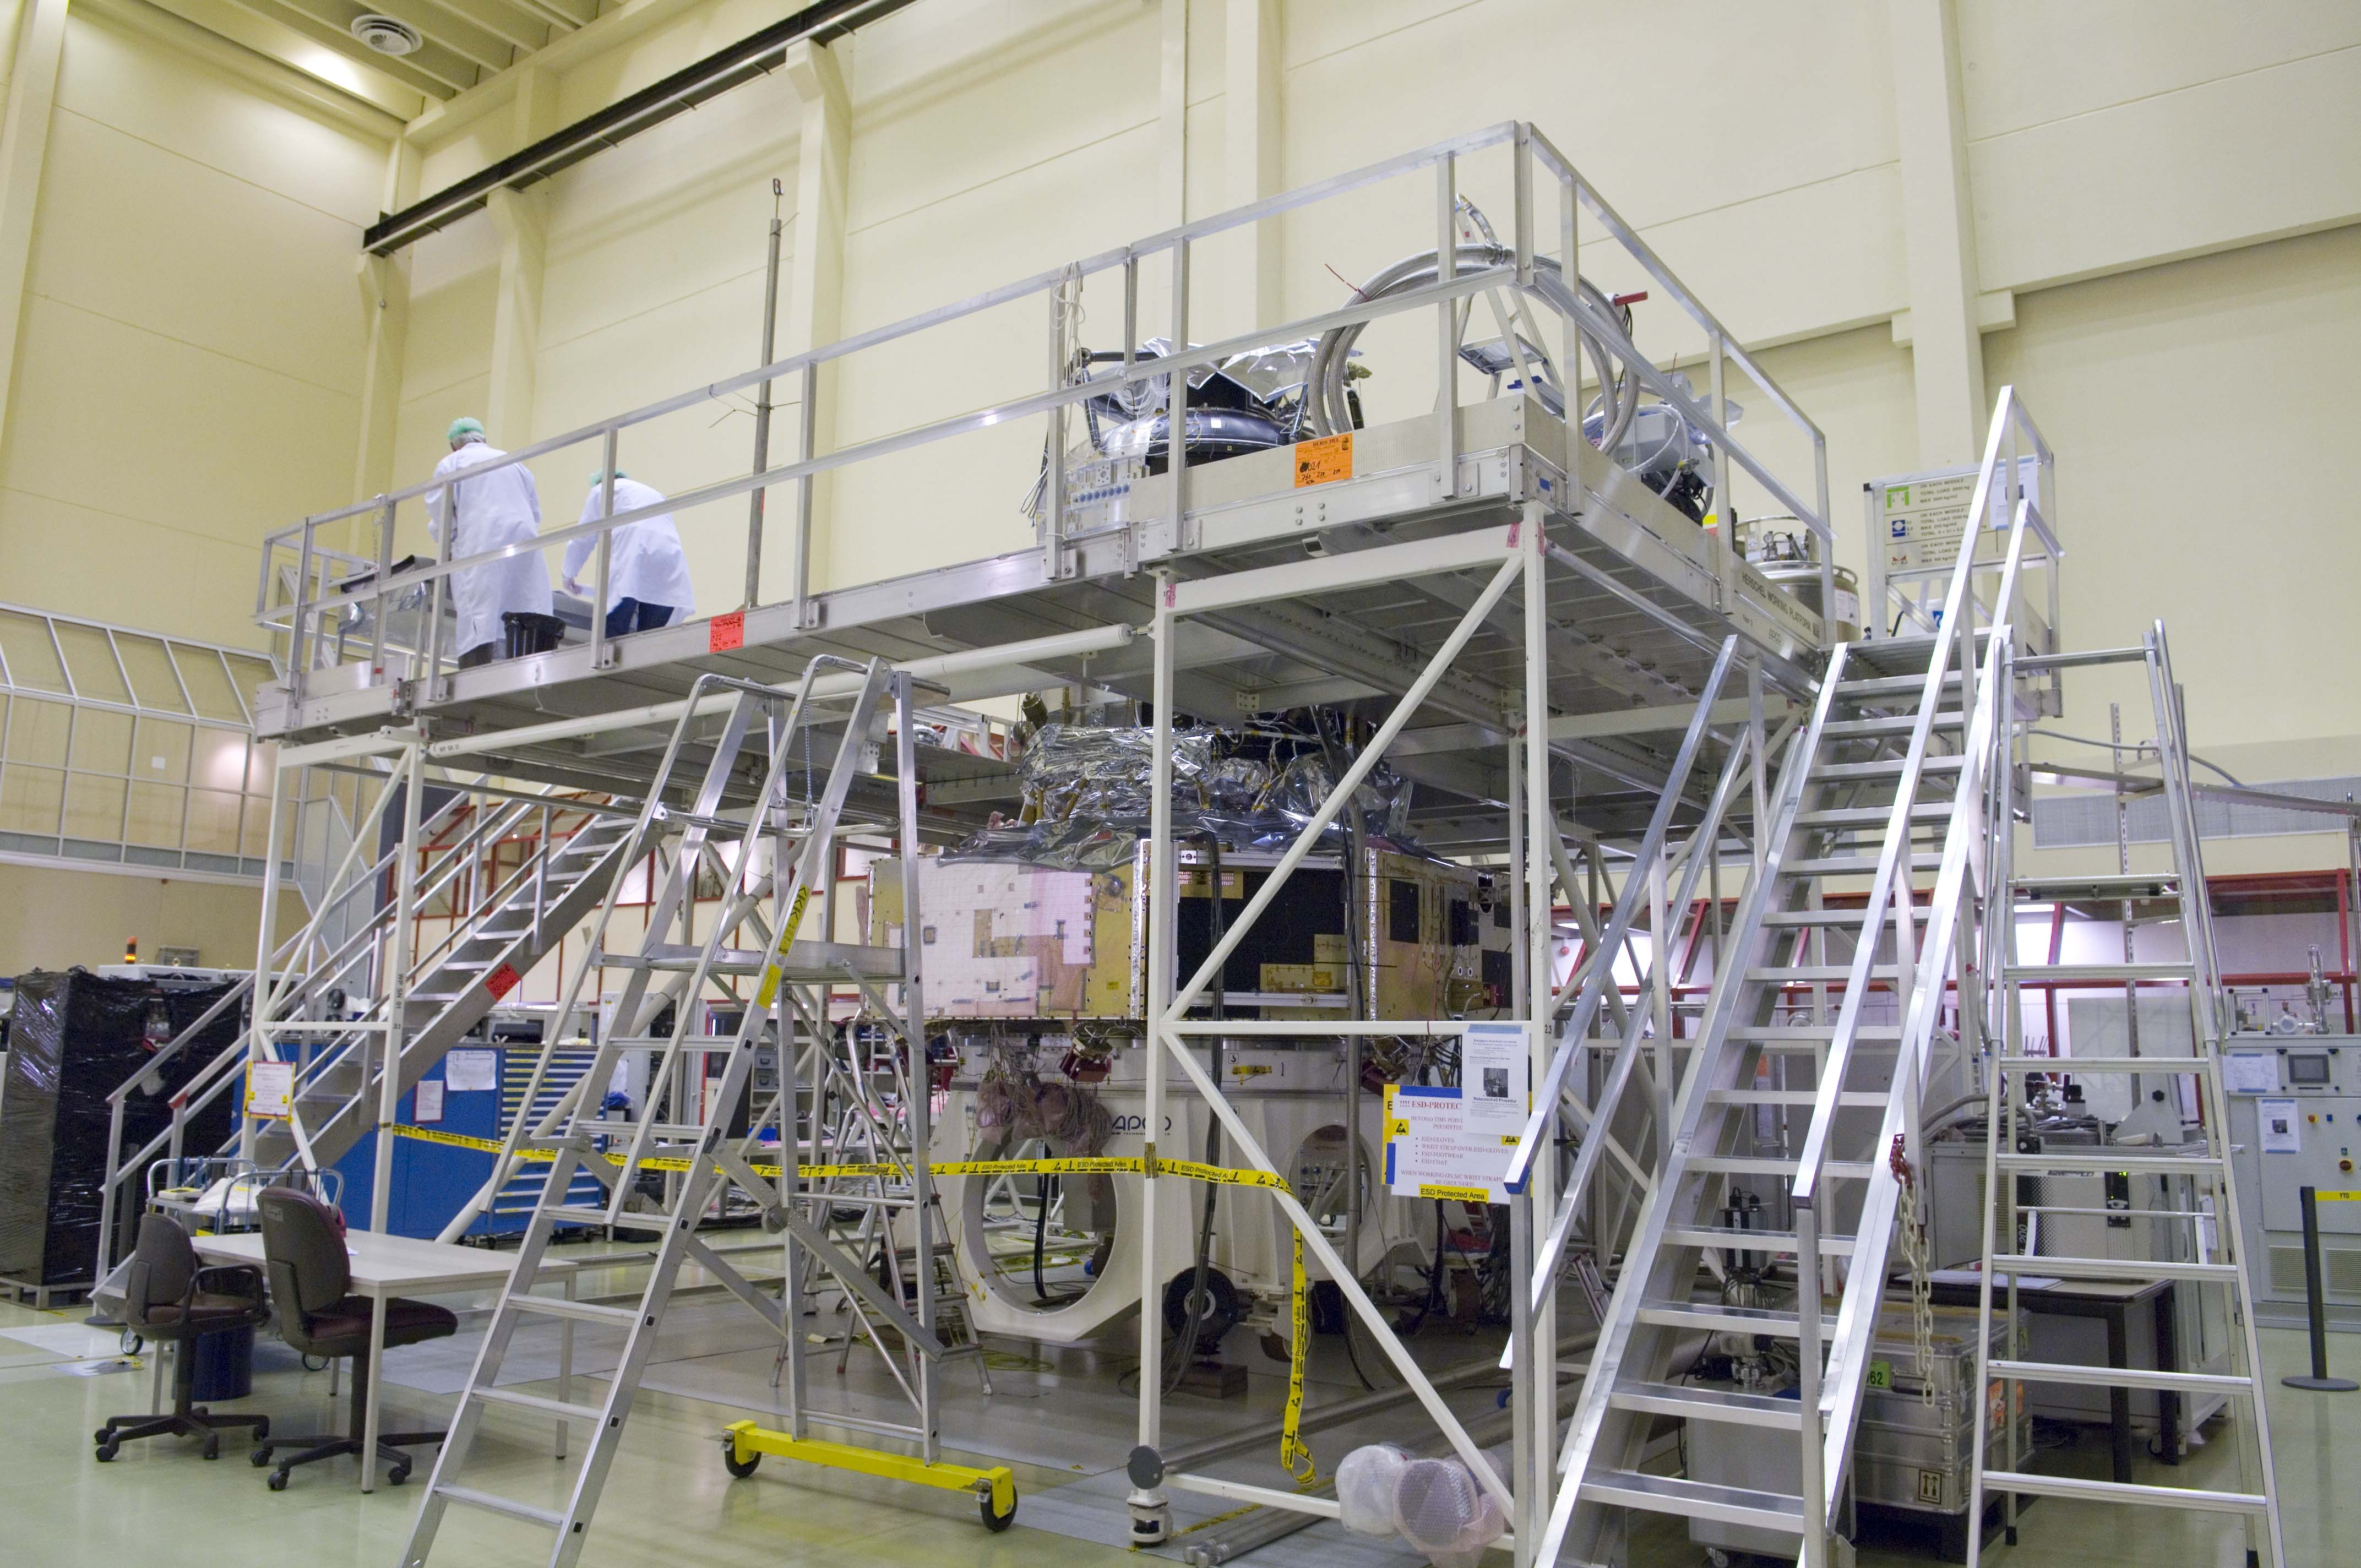 Herschel Cooldown preparation - Scaffolding